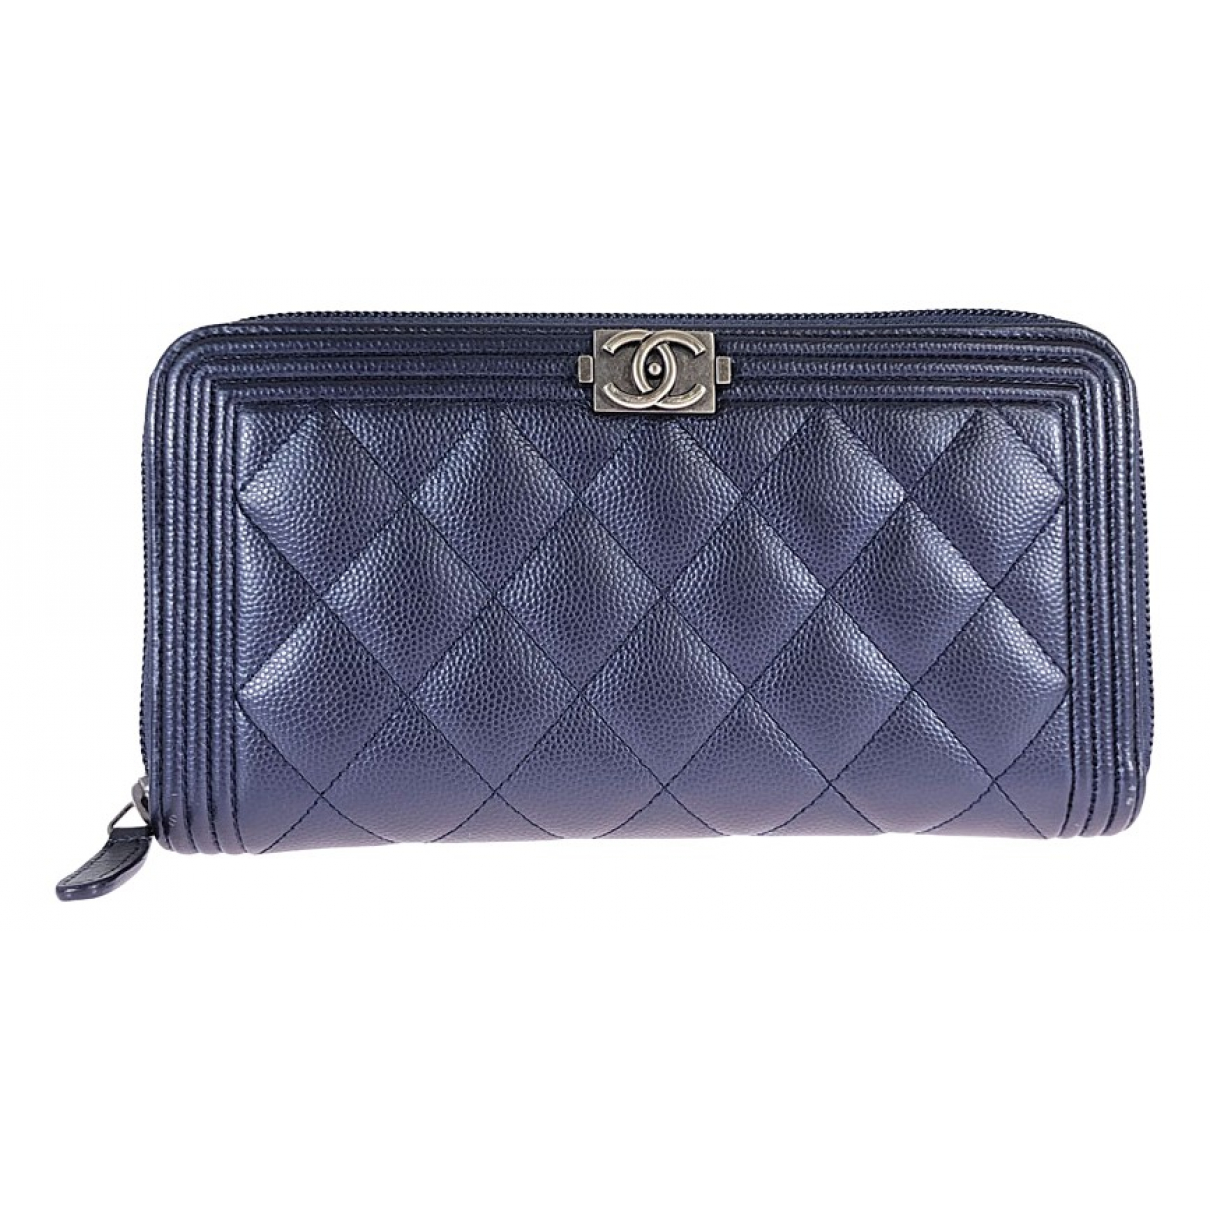 Cartera Boy de Cuero Chanel